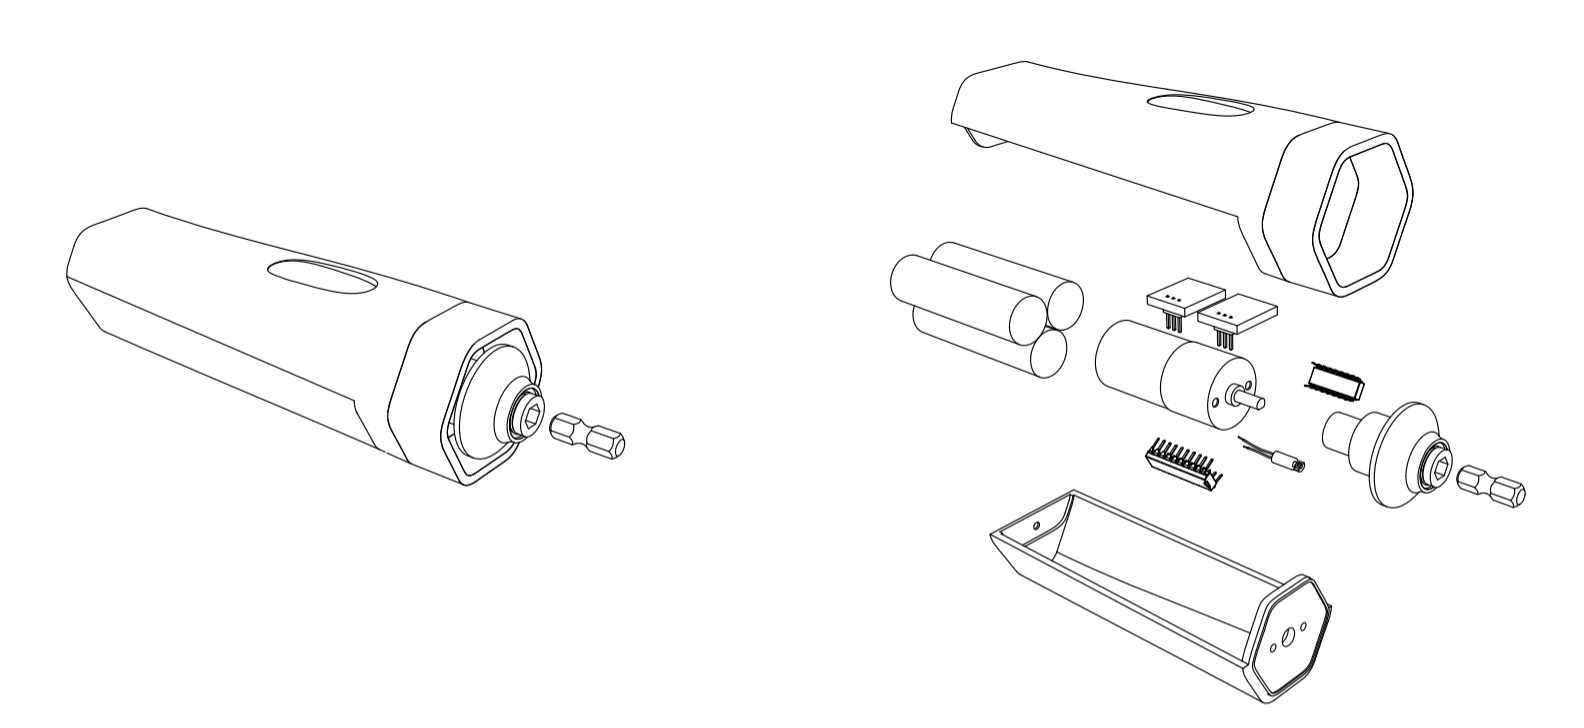 Exploded sketch of the Modular Motor.